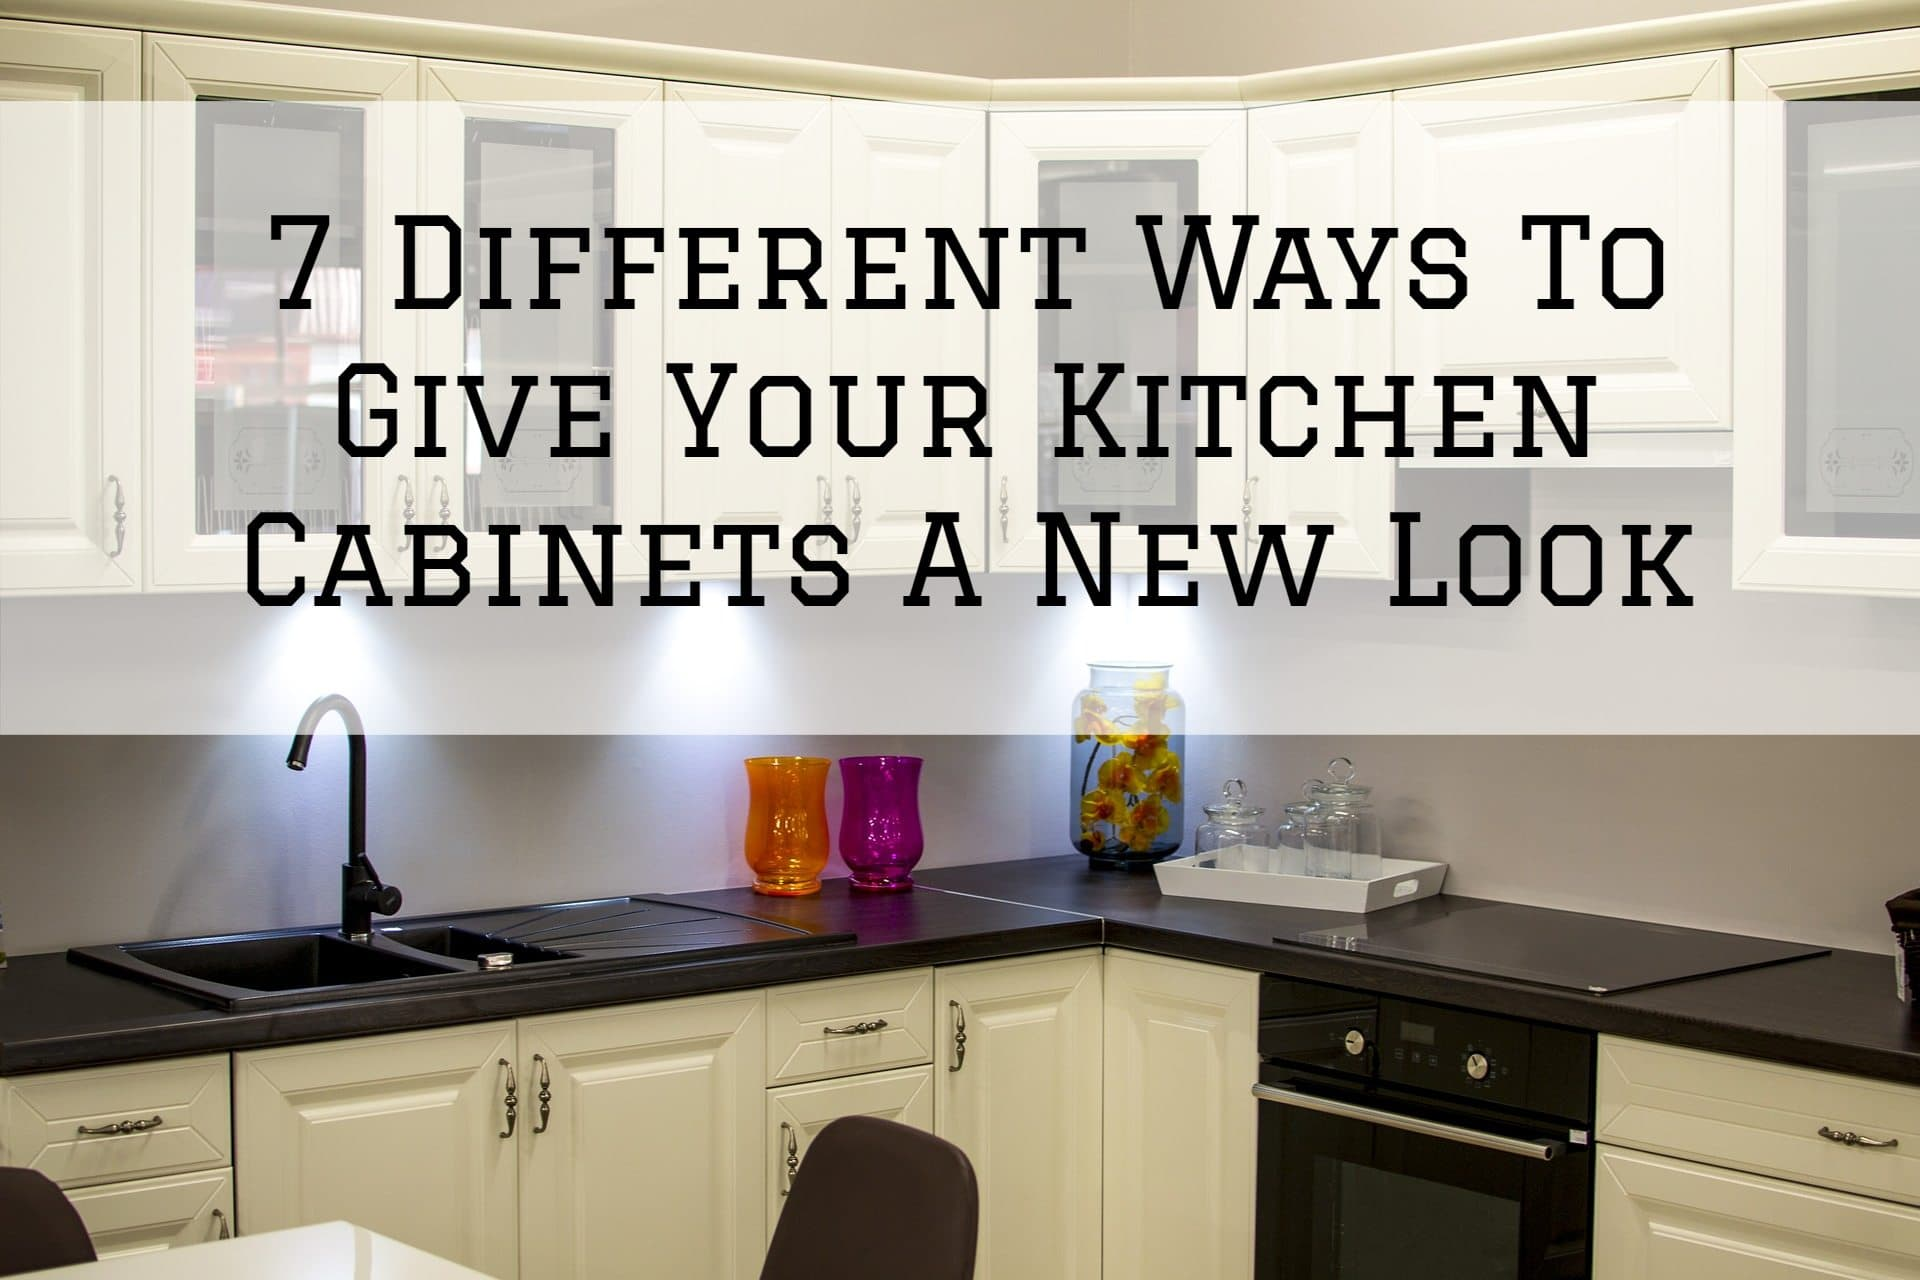 2020-09-21 Prestigious Painting Baton Rouge LA 7 Different Ways To Give Your Kitchen Cabinets